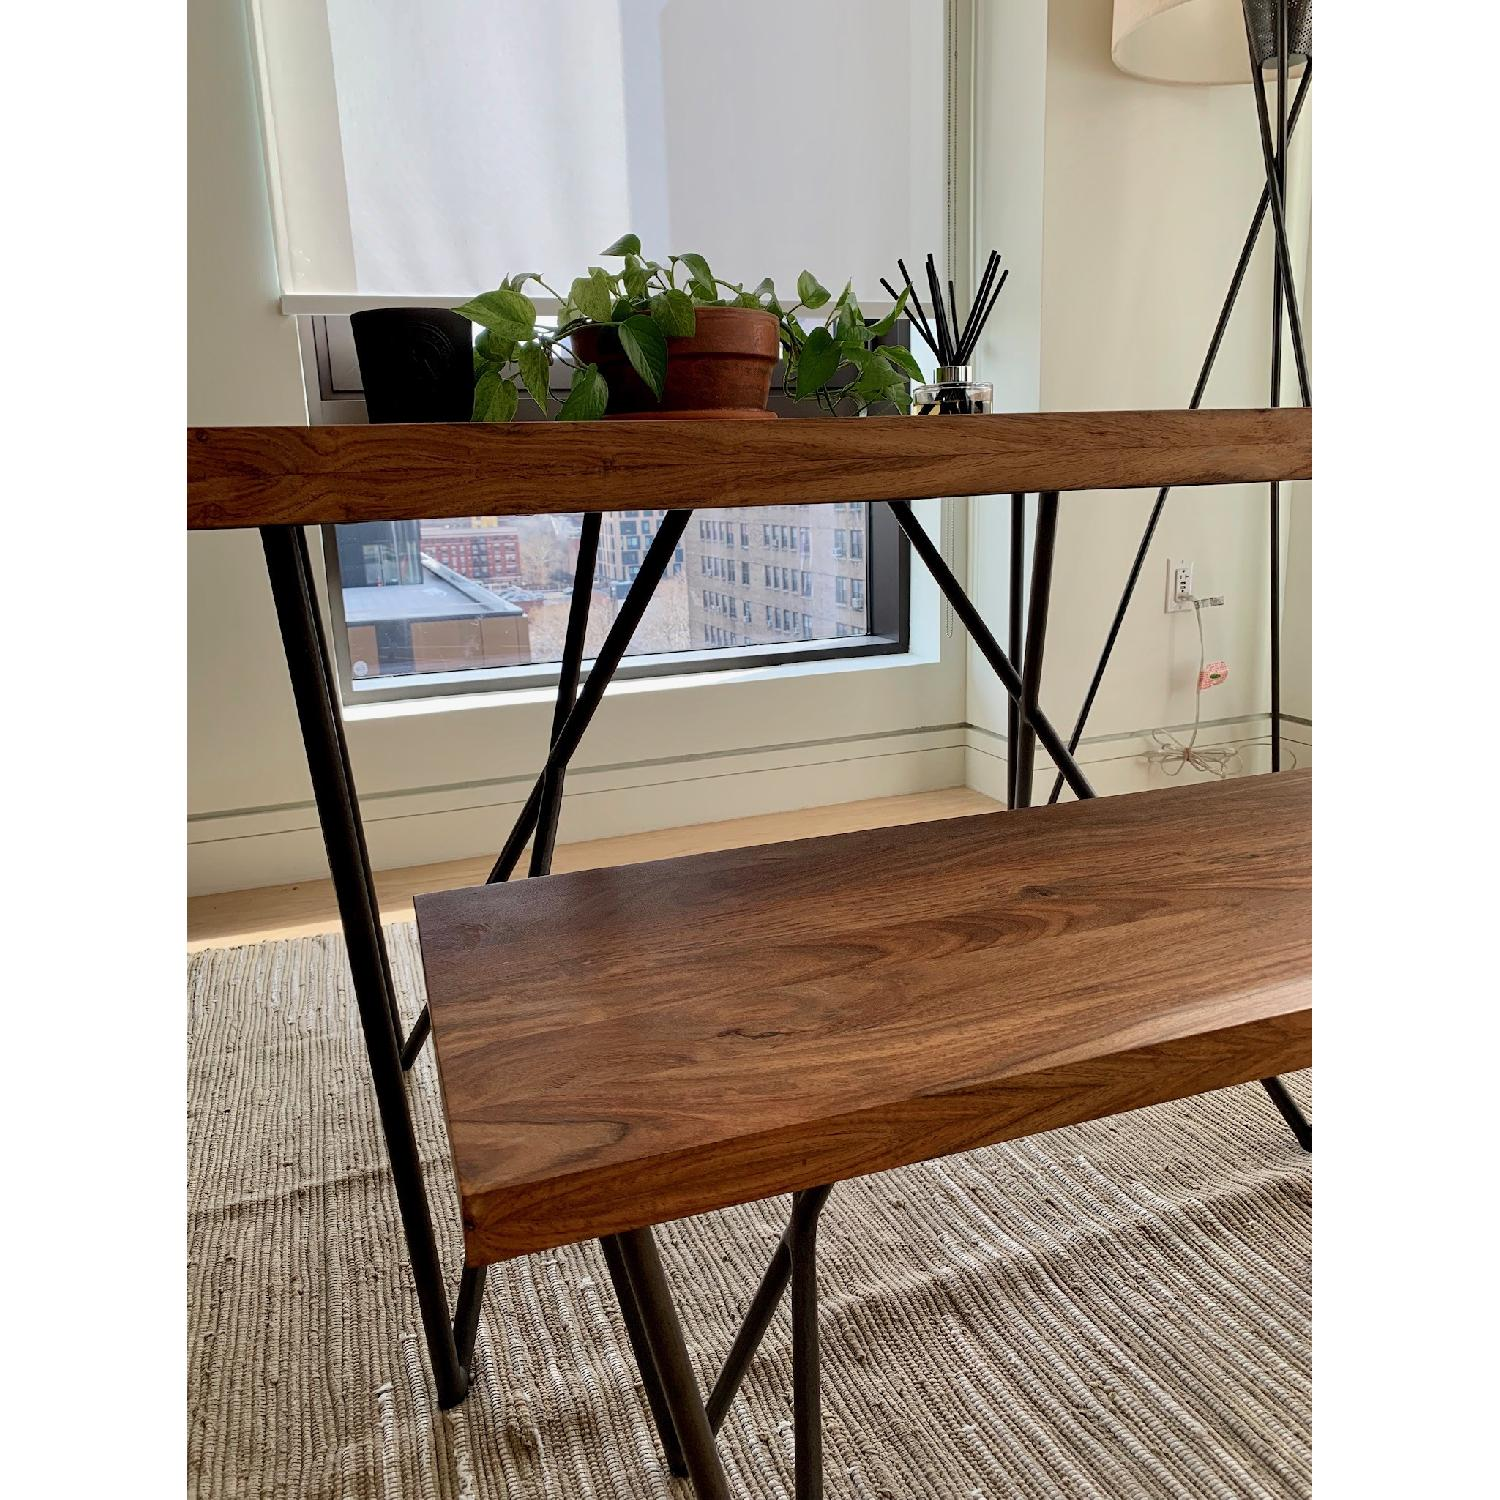 Enjoyable Cb2 Dylan Dining Table W 1 Bench Aptdeco Caraccident5 Cool Chair Designs And Ideas Caraccident5Info